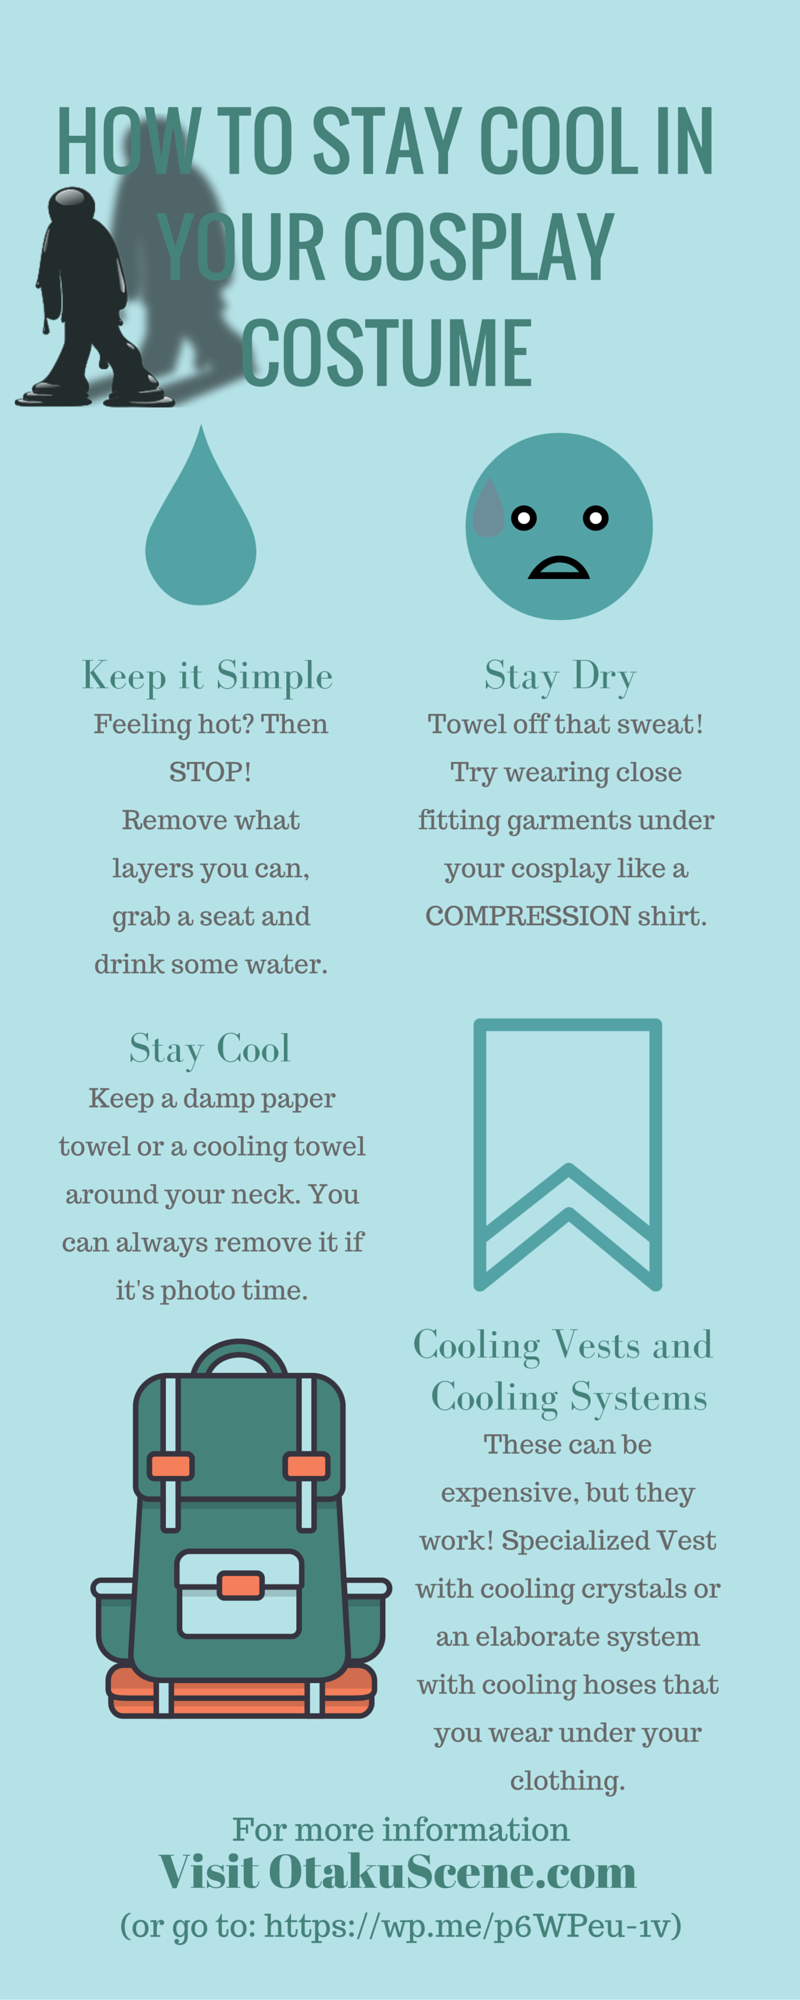 Tips for beating the heat while in your cosplay costume